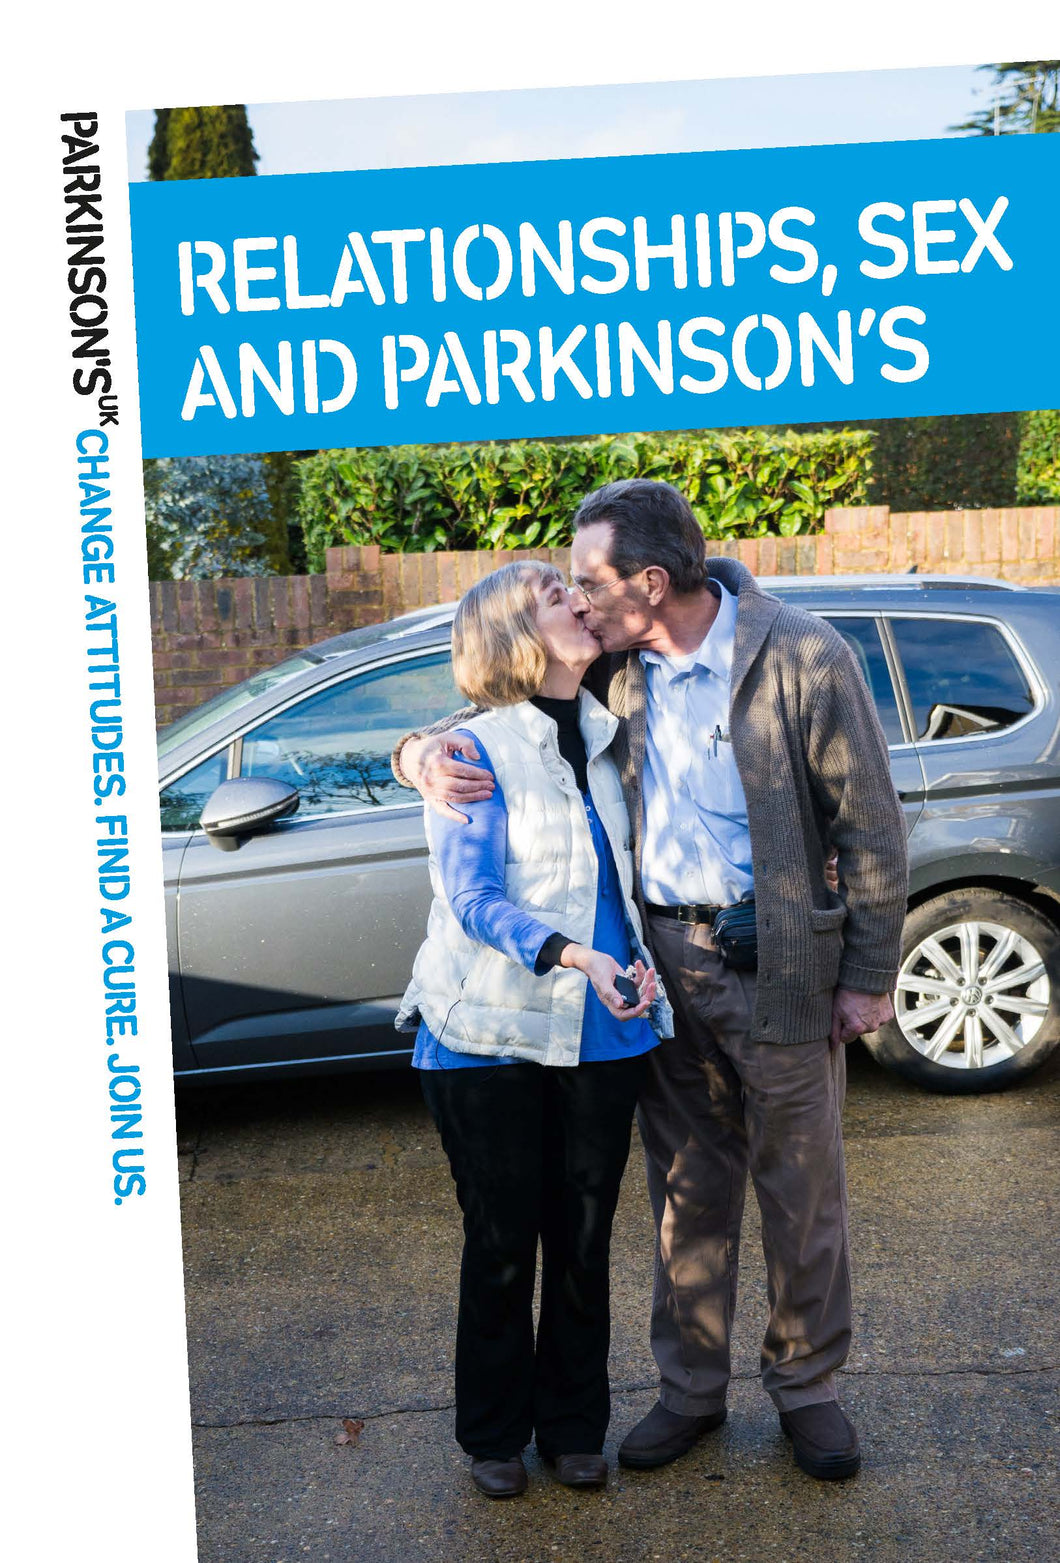 Relationships, sex and Parkinson's